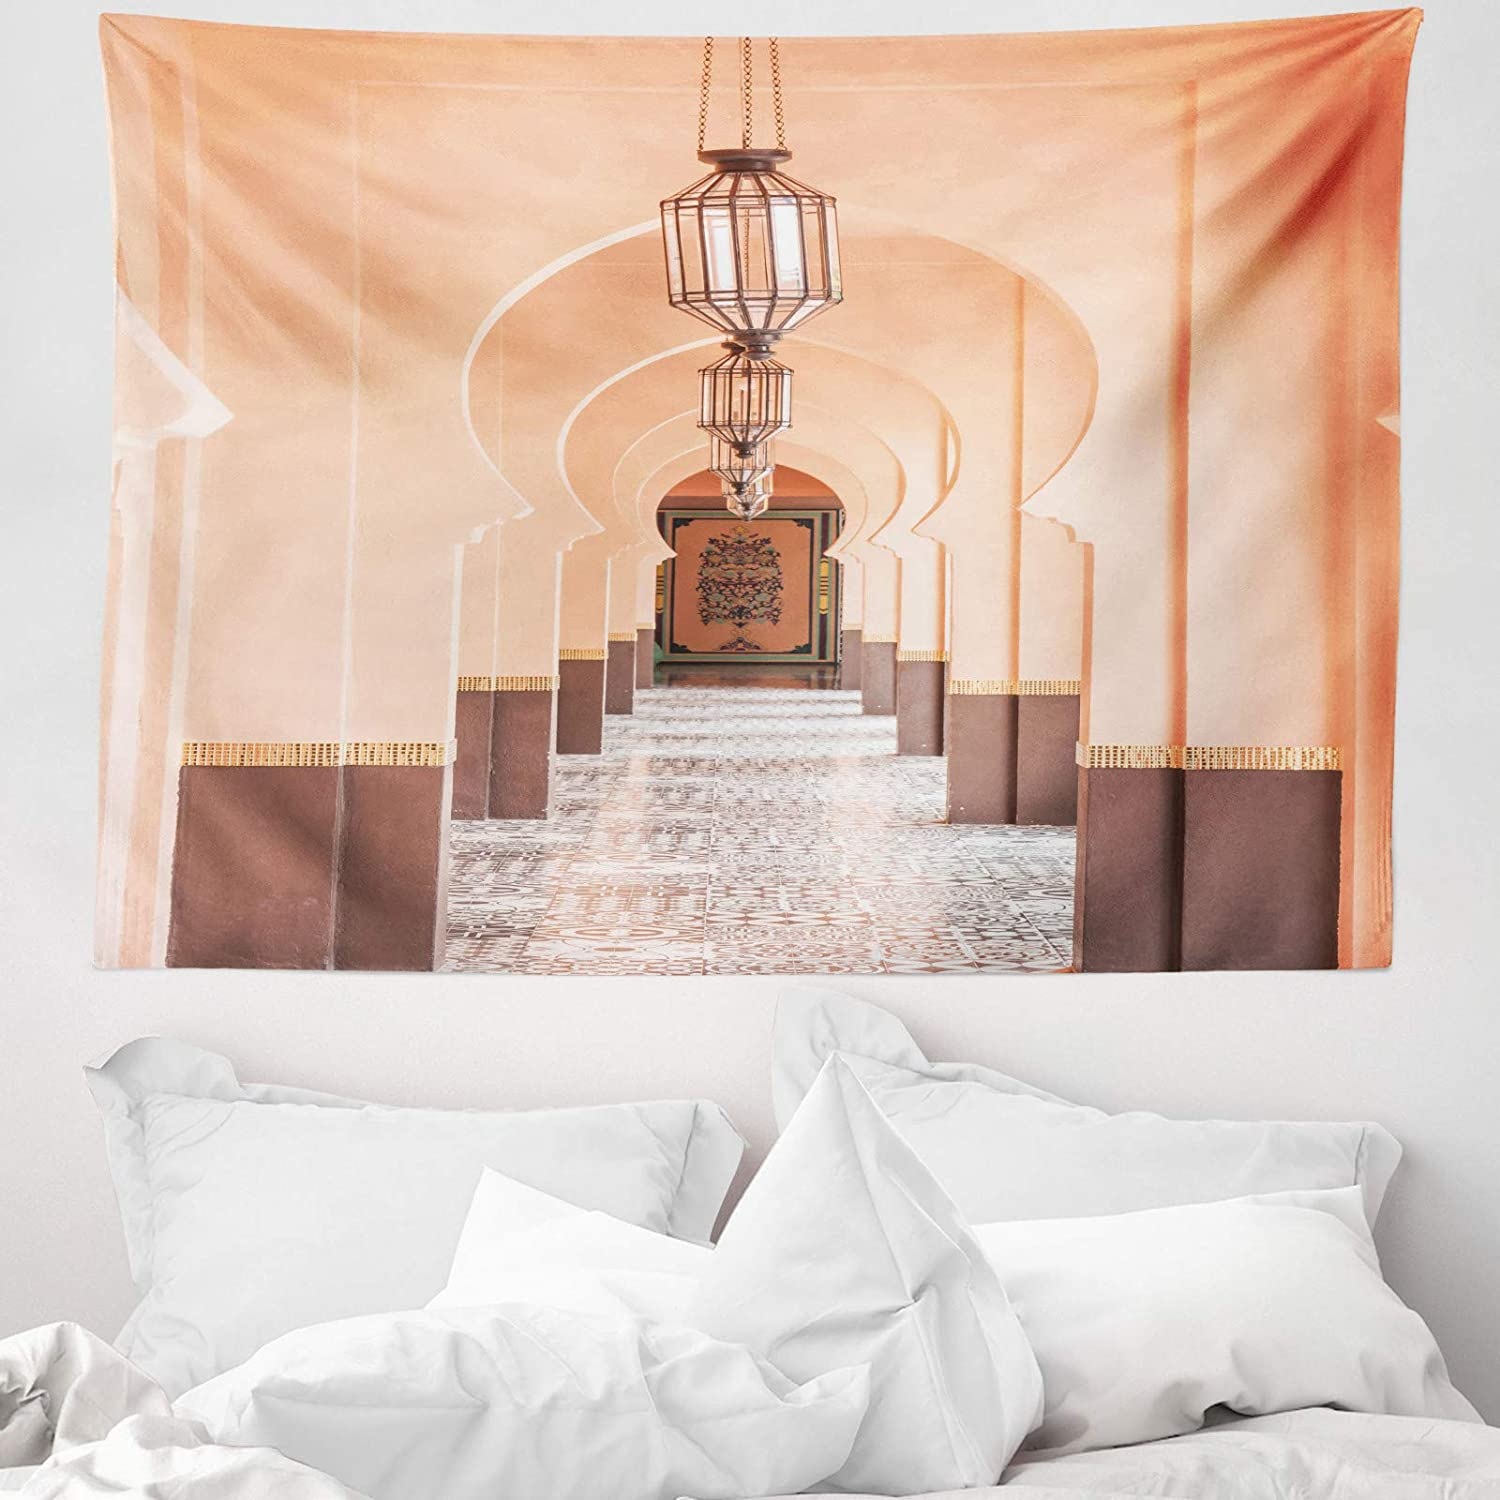 Abakuhaus Moroccan Tapestry Eastern Architecture Photo Fabric Wall Hanging Decor For Bedroom Living Room Dorm 58 W X 43 L Peach Pale Mauve Taupe Amazon Co Uk Kitchen Home